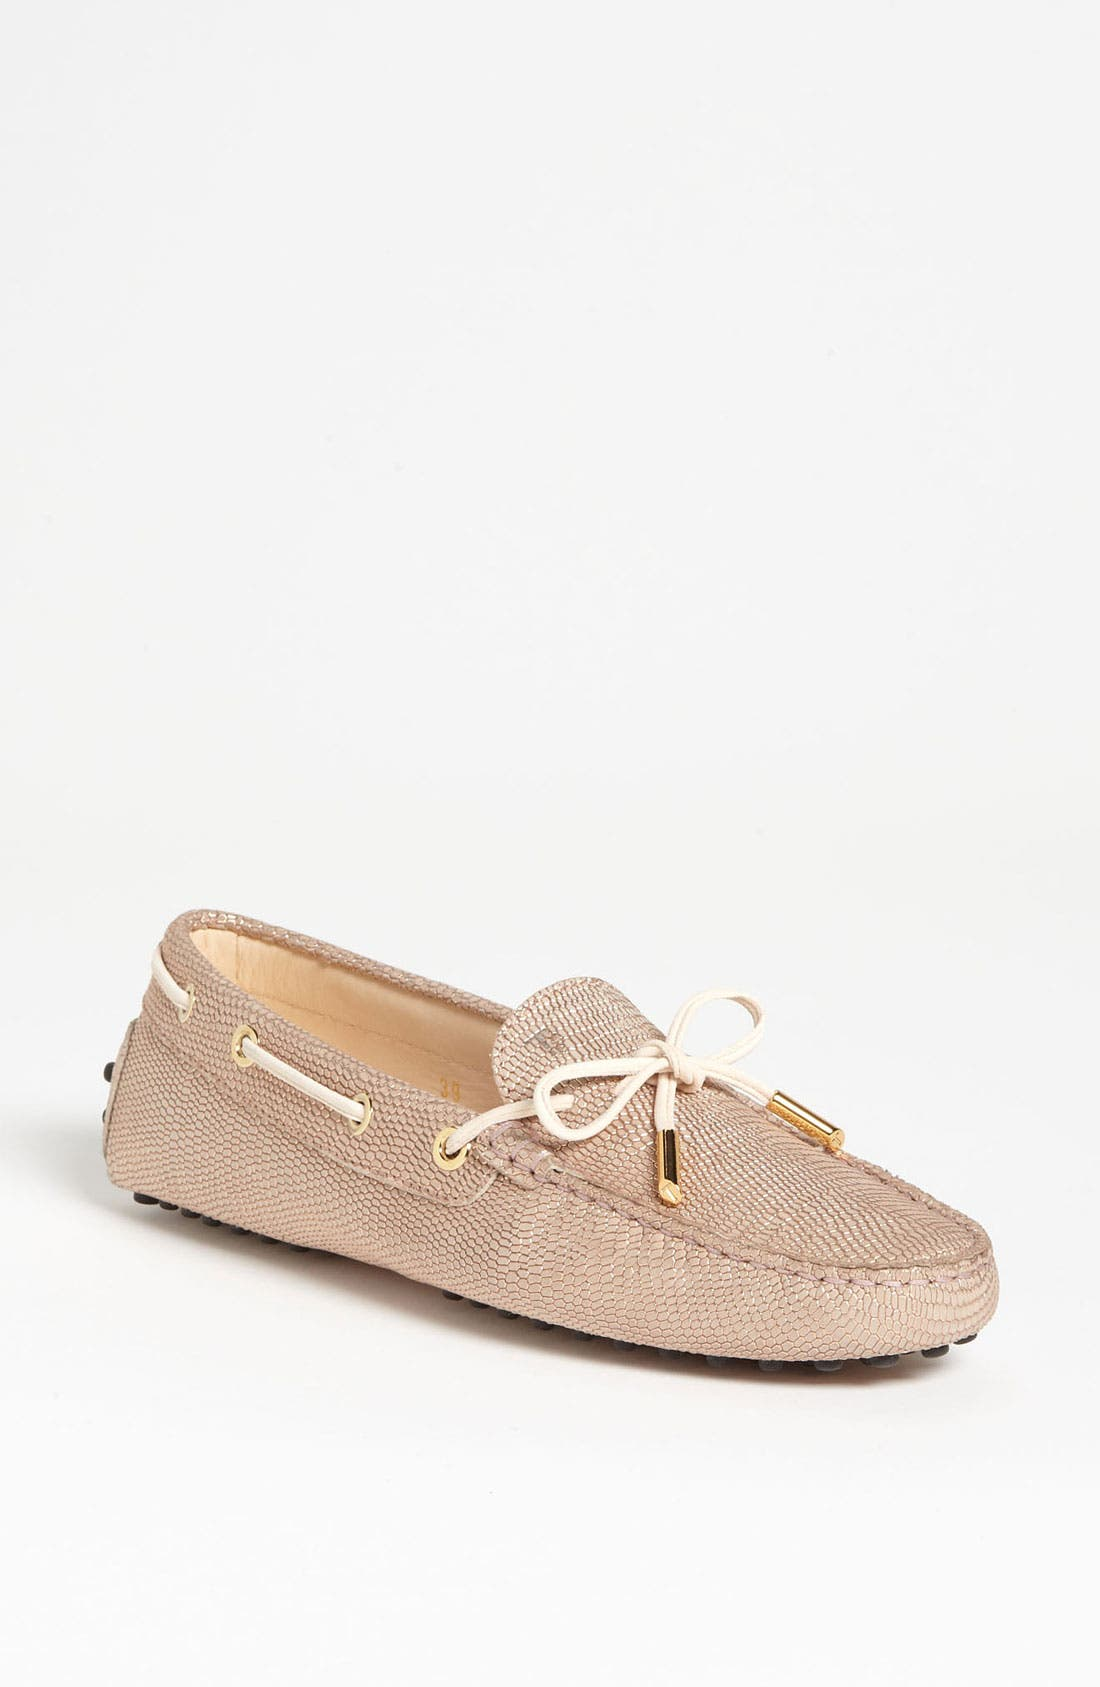 Main Image - Tod's 'New Heaven Laccetto' Moccasin